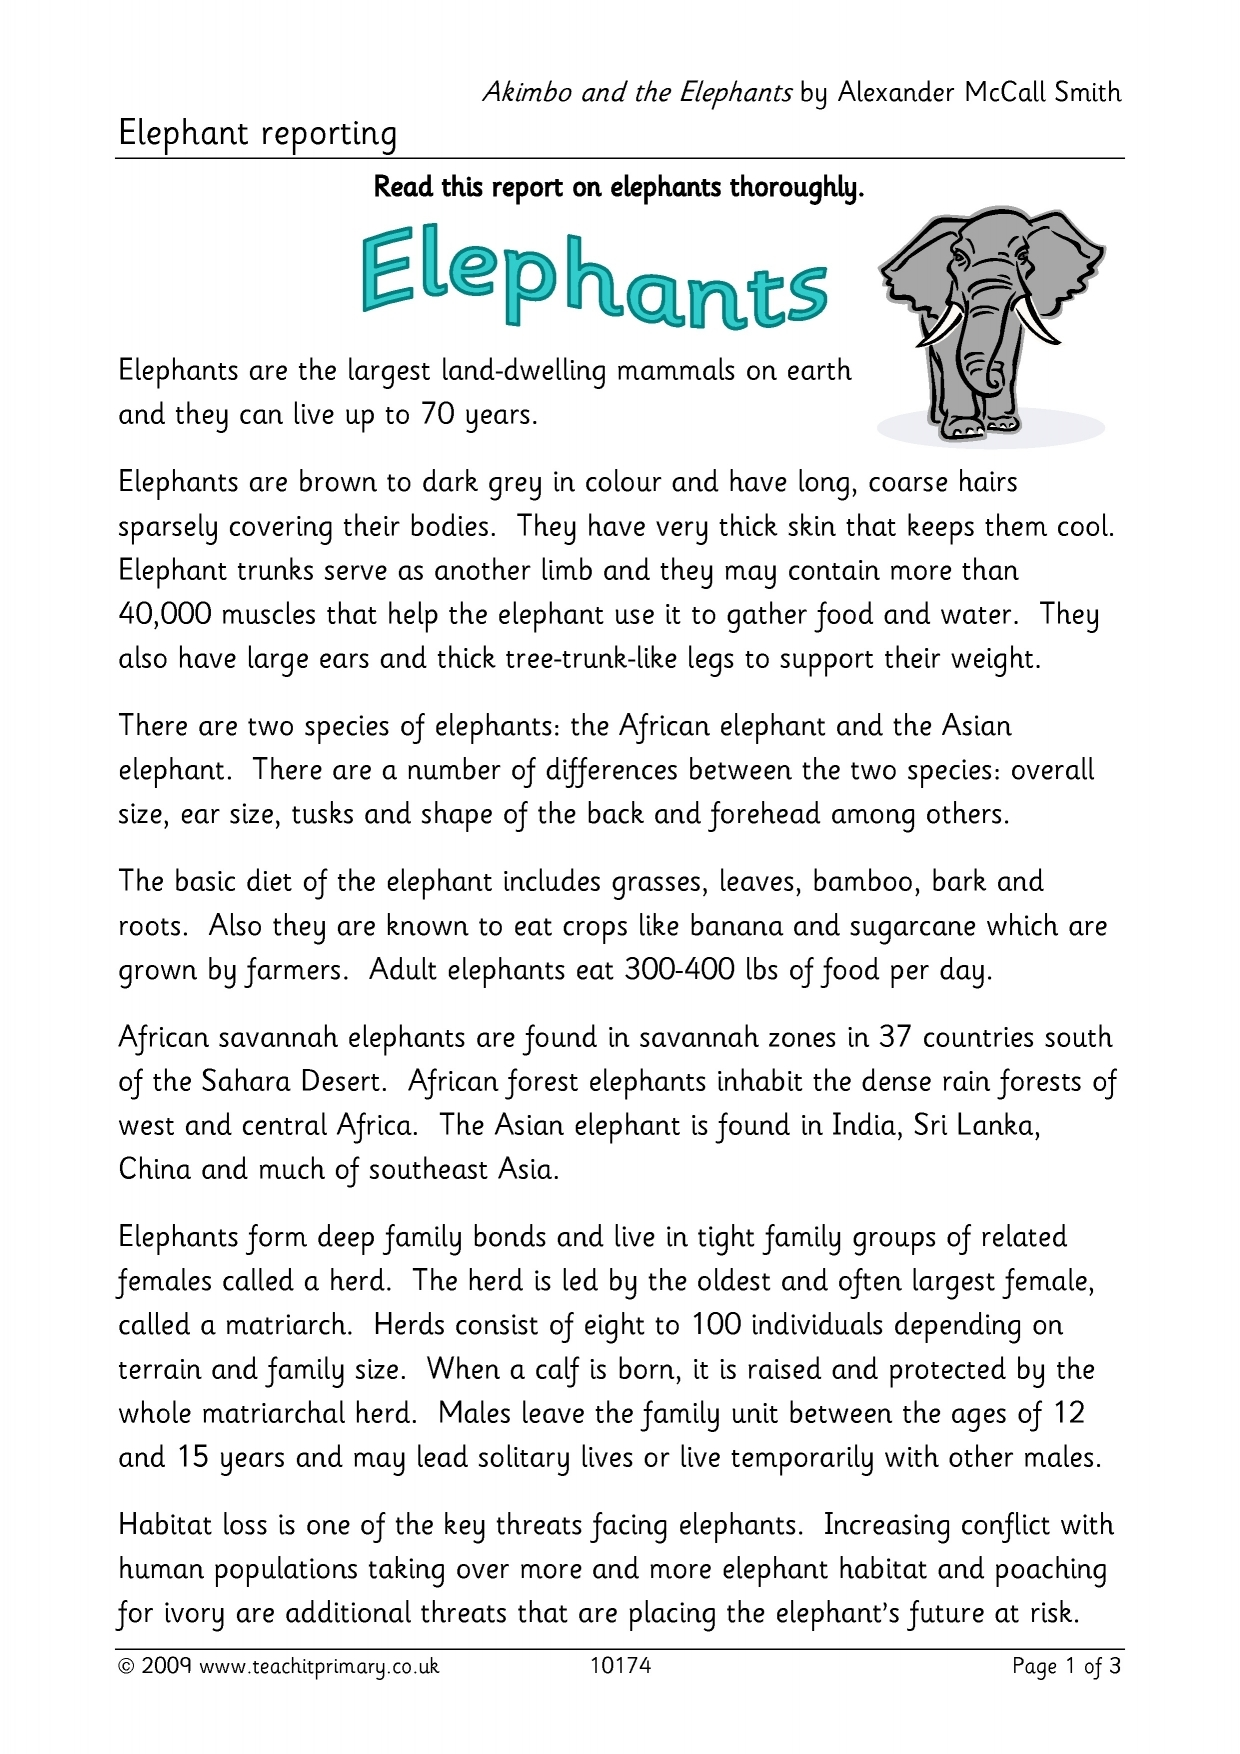 elephant reporting example